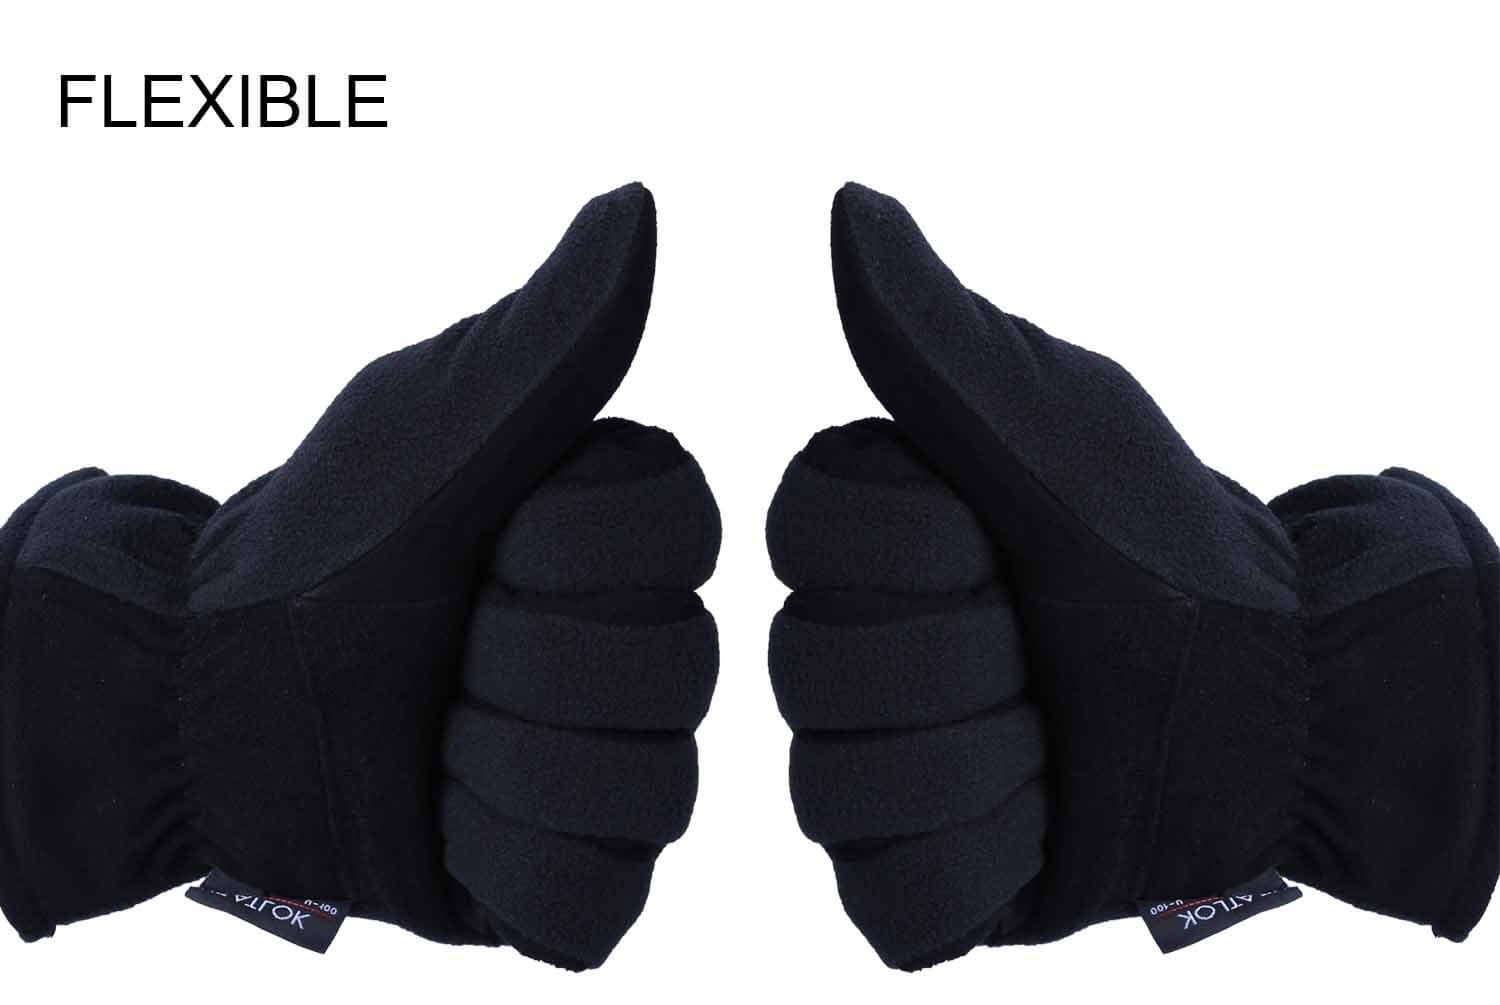 OZERO Winter Gloves, -10°F(-23℃) Cold Proof Thermal Work Glove - Deerskin Suede Leather Palm and Polar Fleece Back with Heatlok Insulated Cotton - Hands Warm in Cold Weather for Women and Men